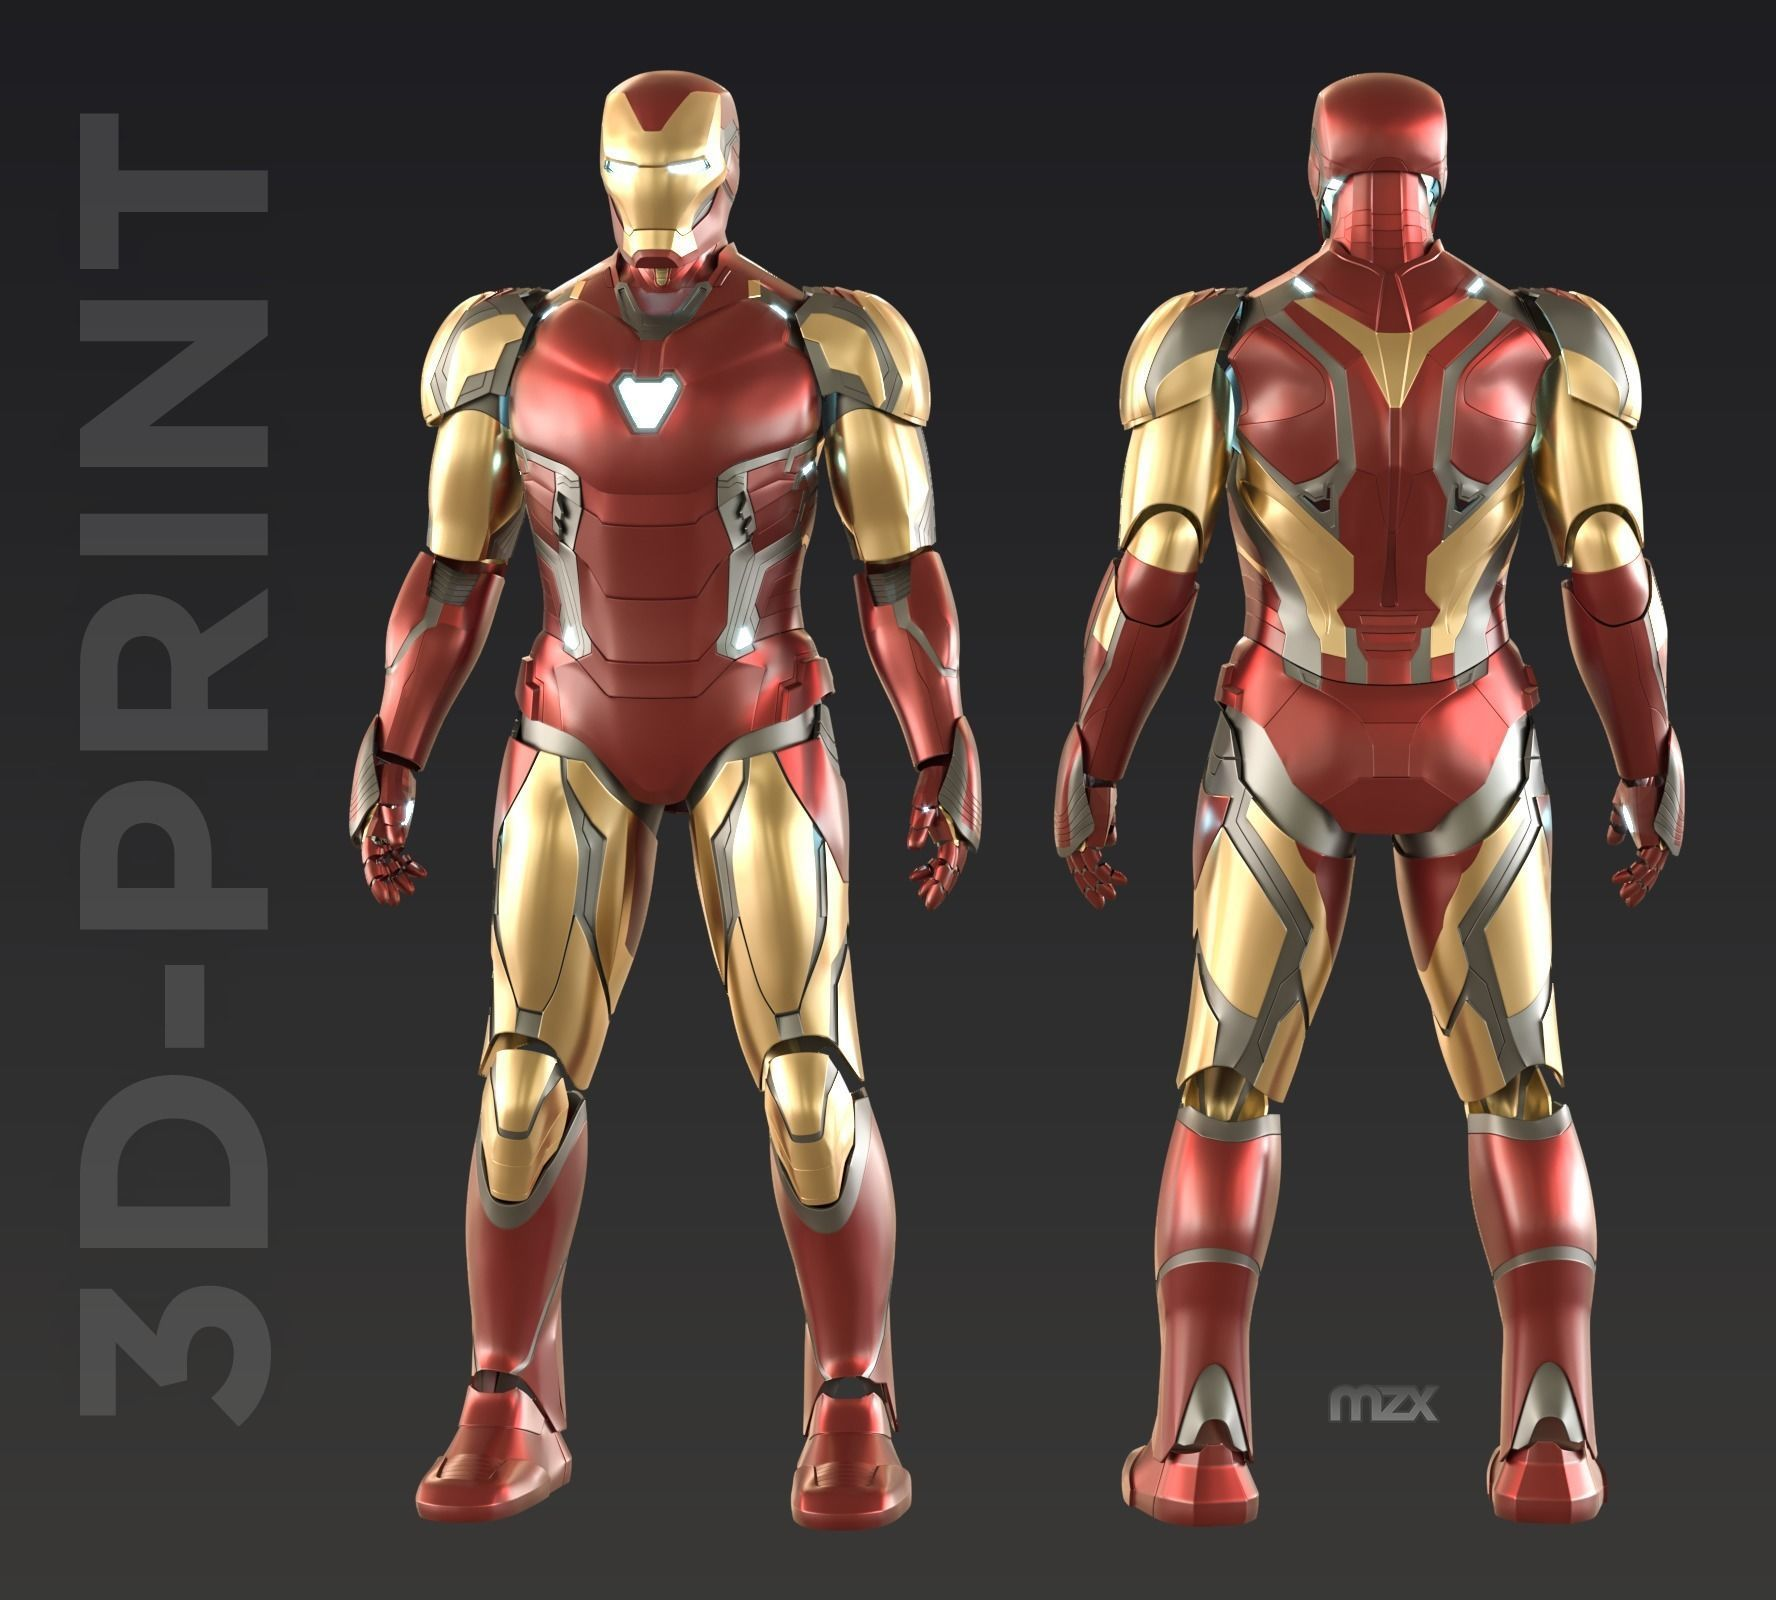 Iron Man Mark 85 wearable suit for 3D-printing DIY